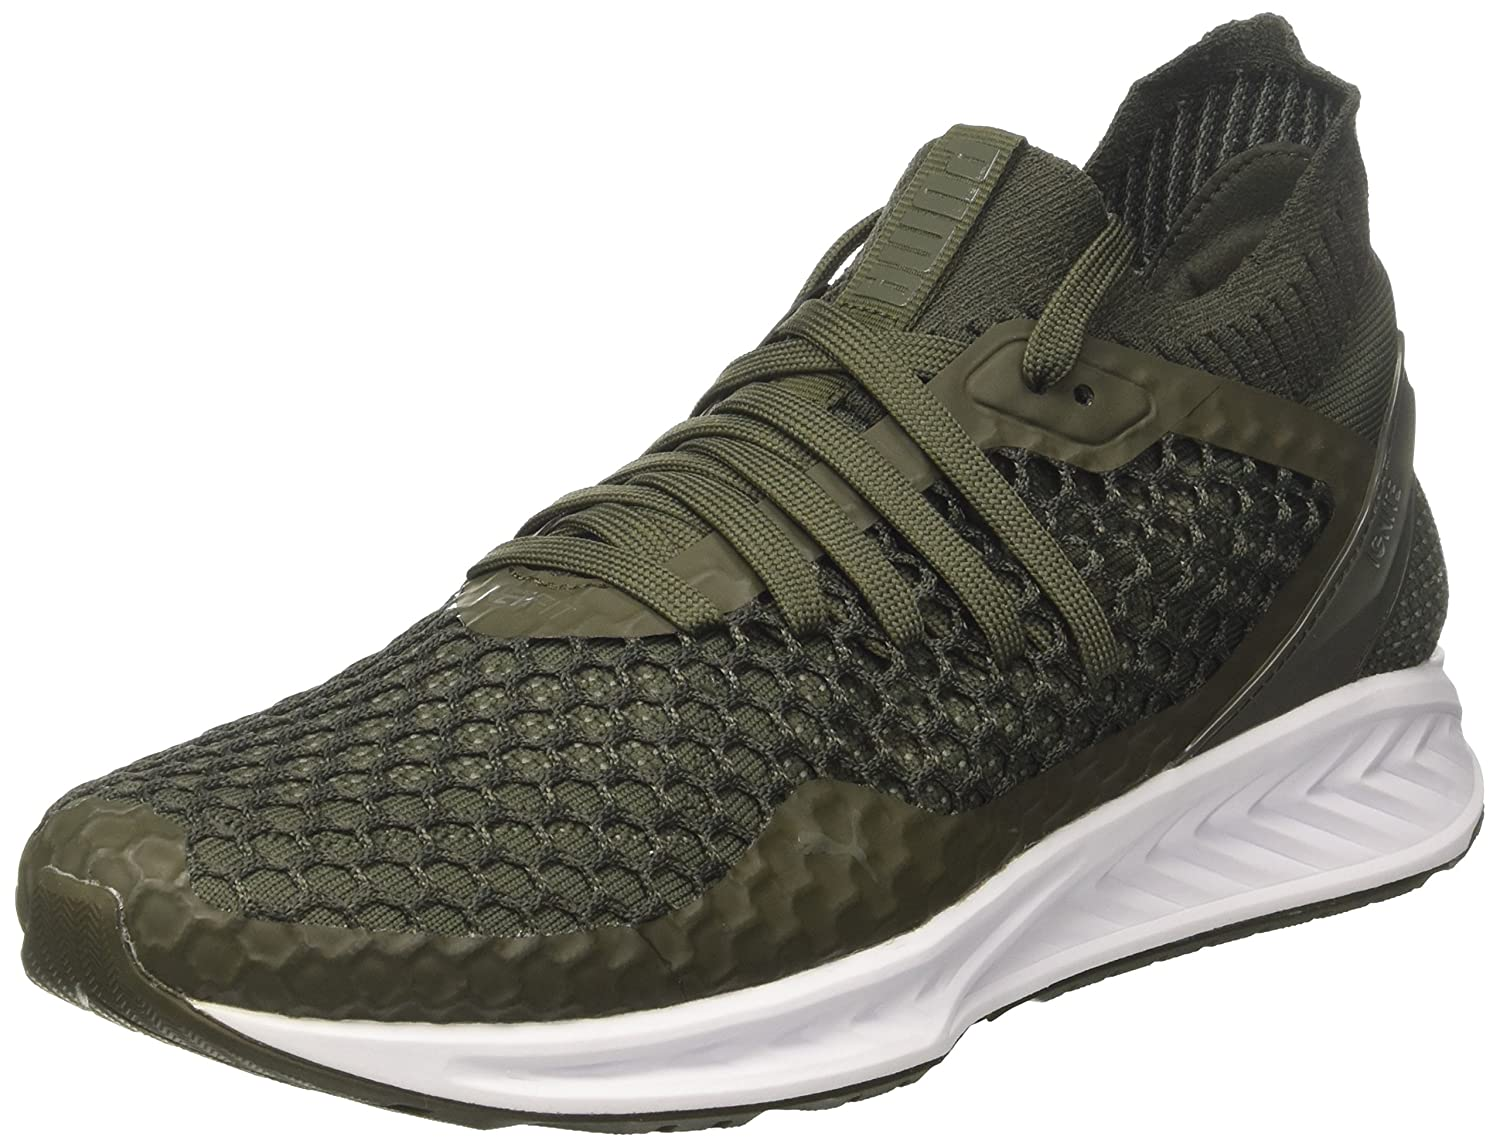 Puma Ignite Netfit, Chaussures Multisport Outdoor Homme Homme Outdoor 47 EU|Marron (Forest Night-castor Gray) a6ccec